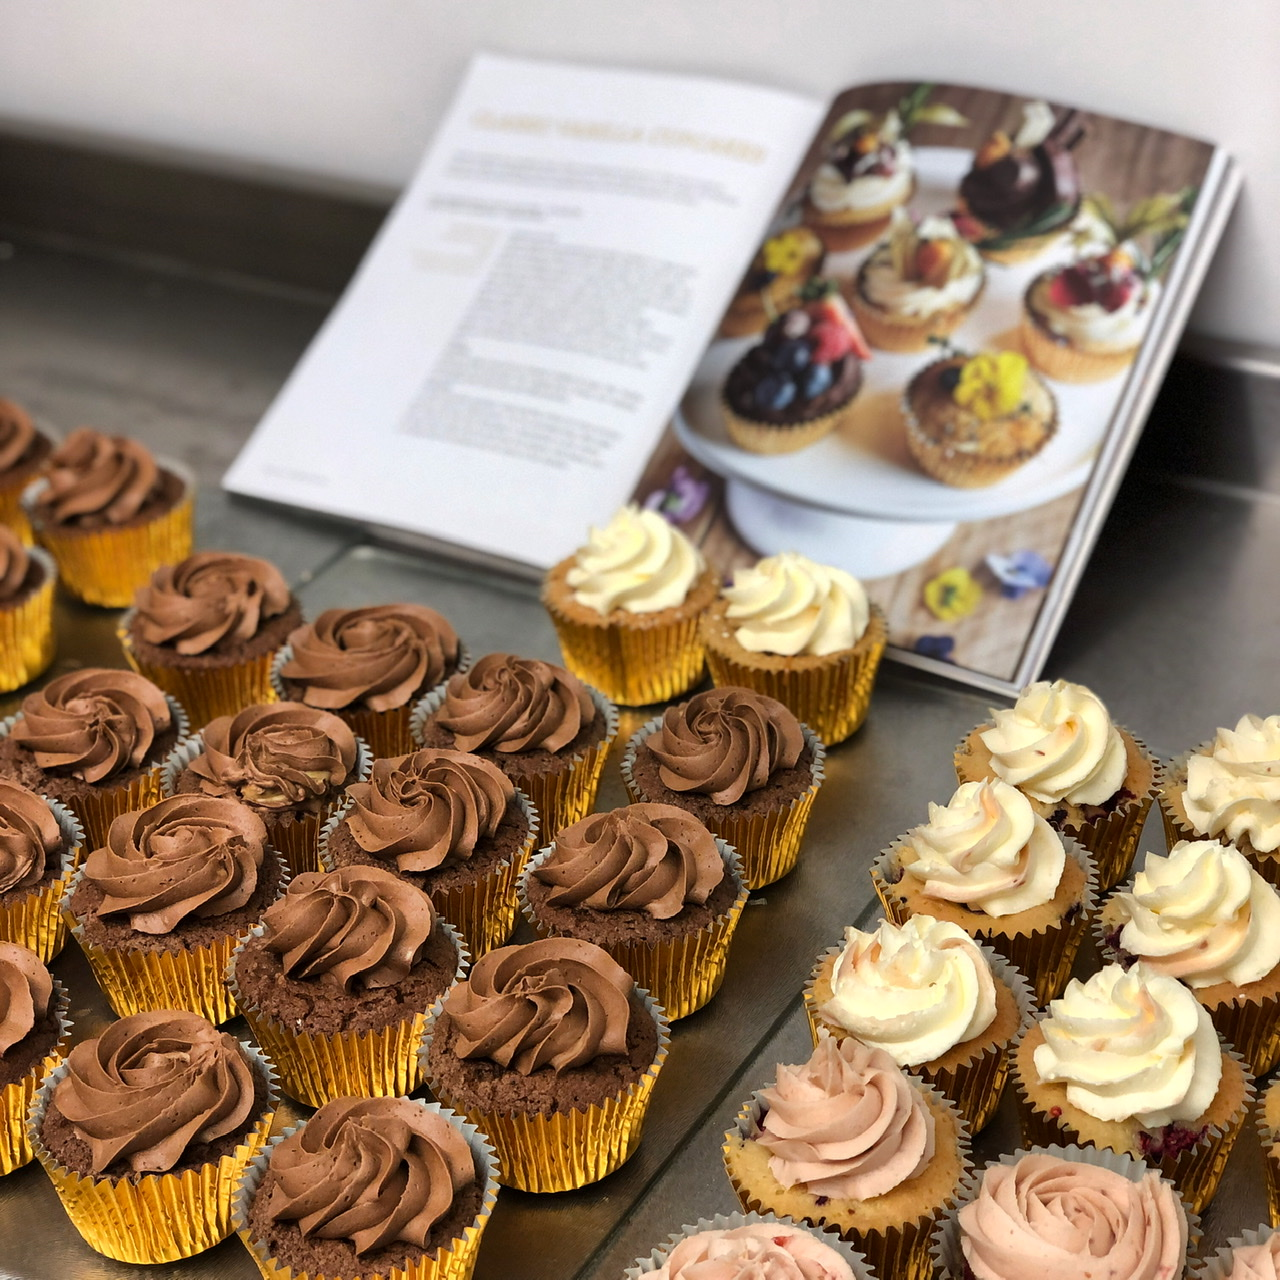 Cupcakes from our recipe book